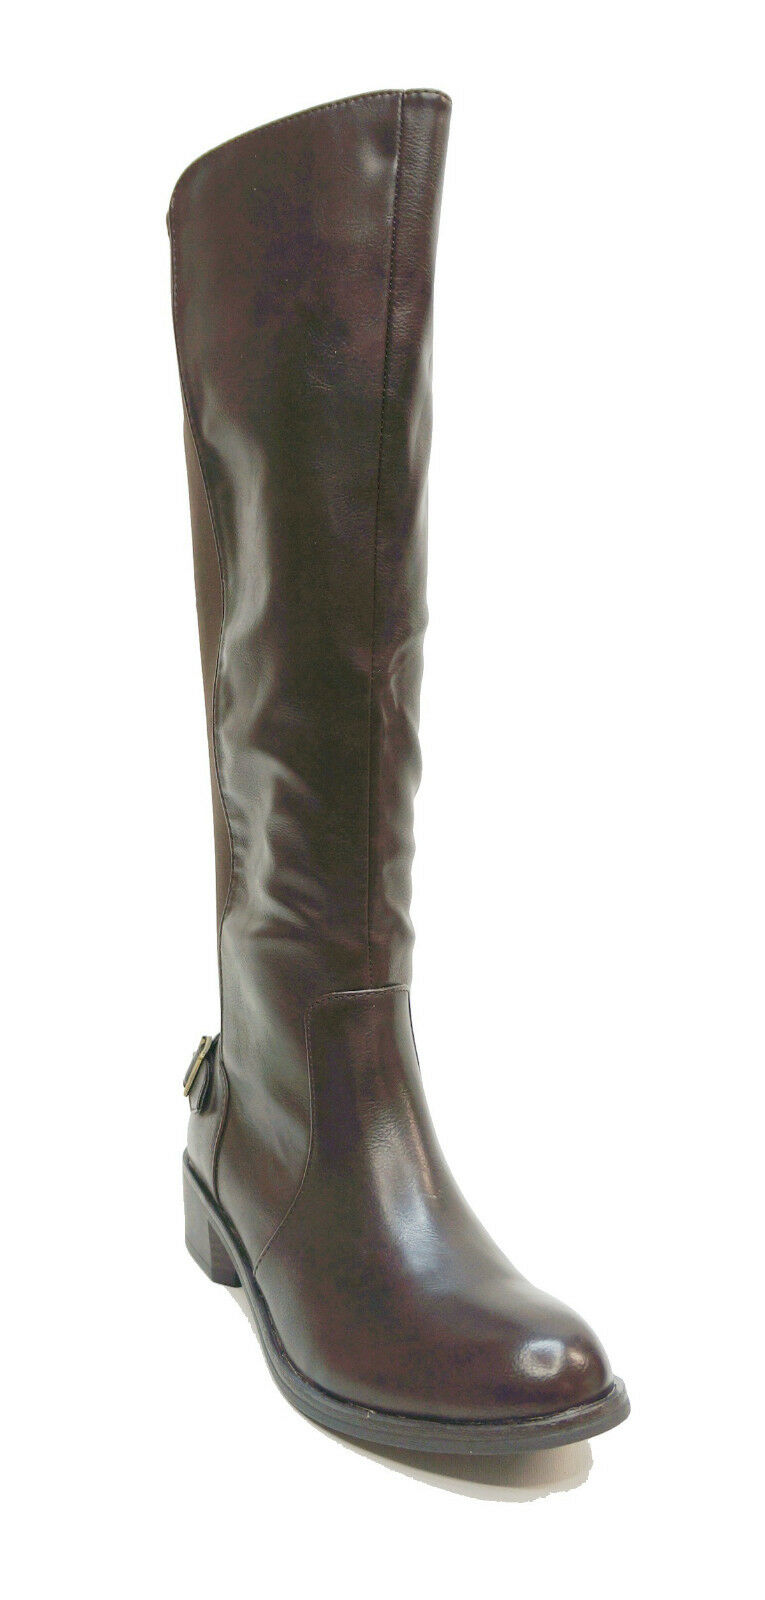 Style&co. Brown Stretch Calf Riding Boots JAYDEN Women's Shoes US 8